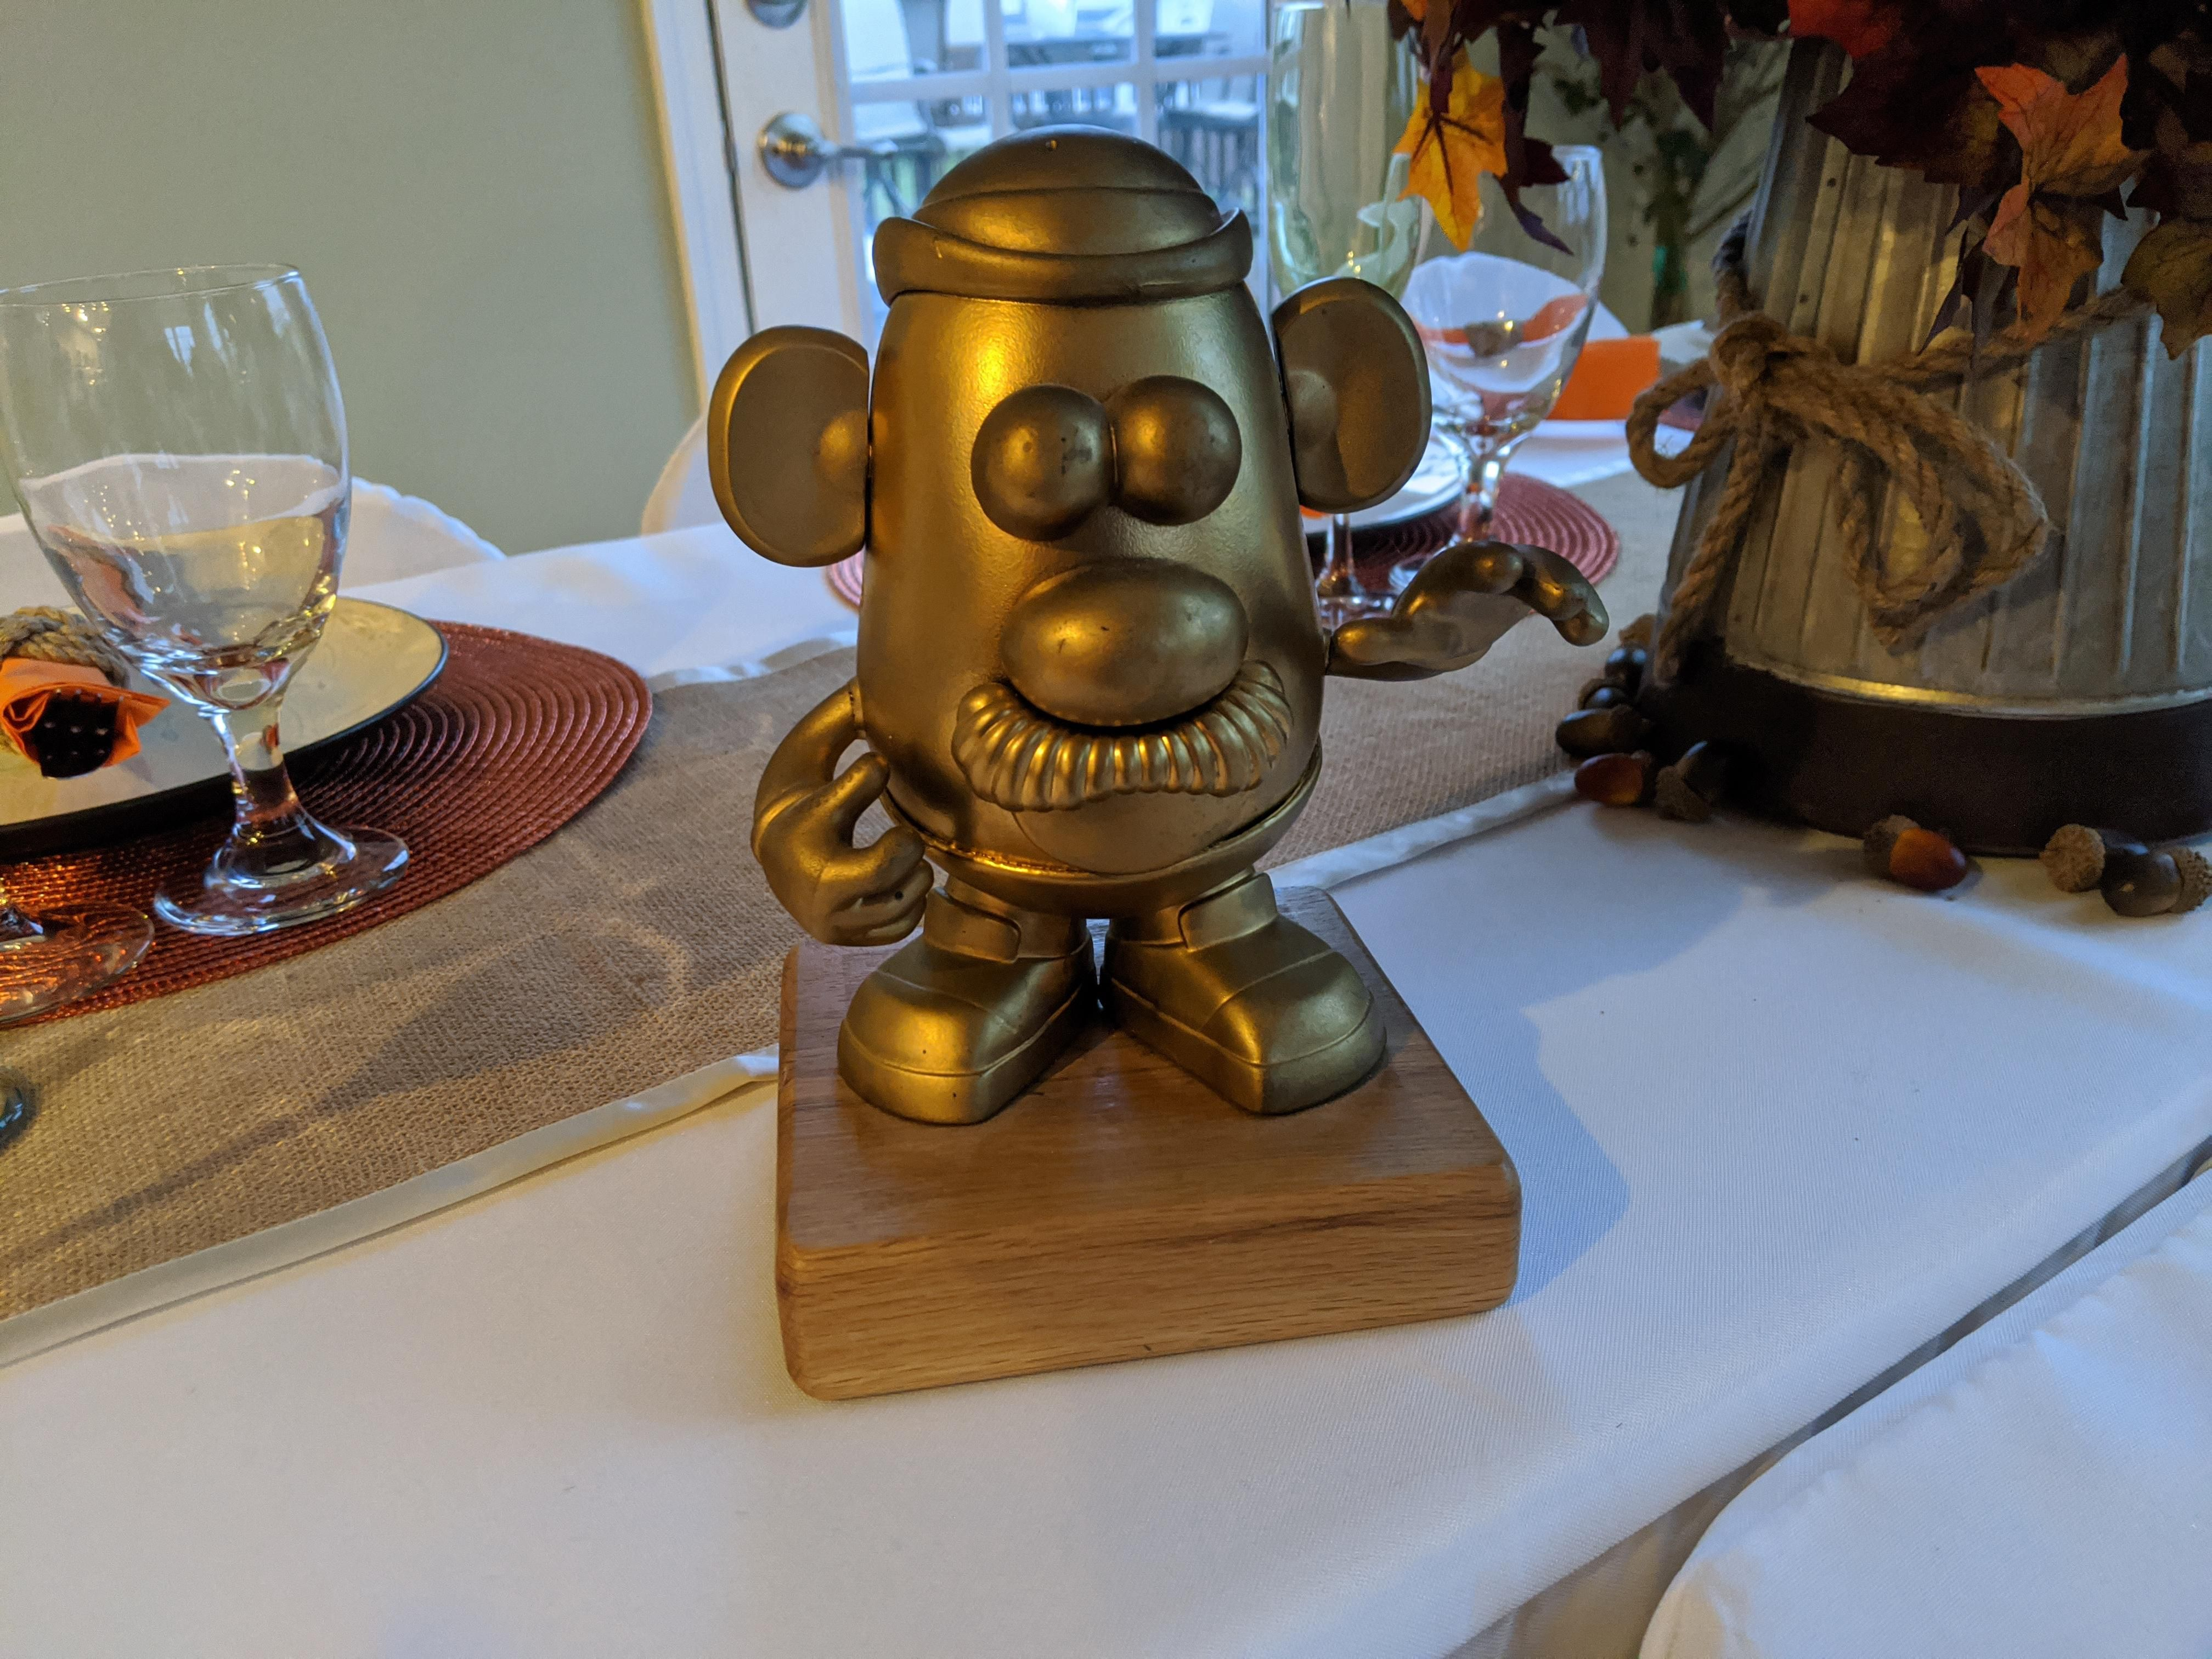 Every year my in-laws do a Thanksgiving potato peeling contest. Winner gets to keep the trophy till next year.